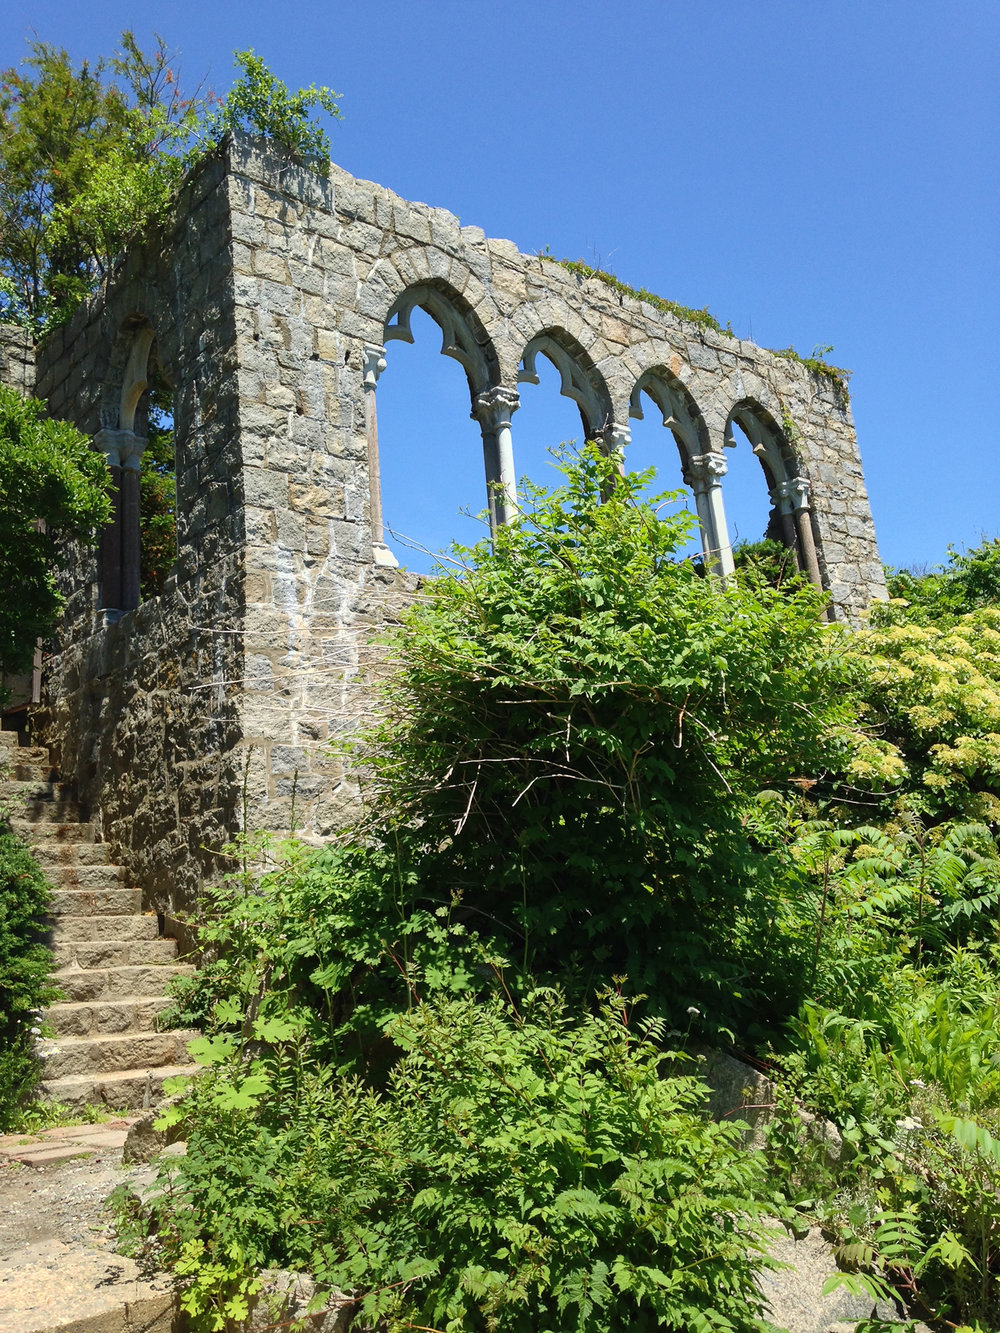 Figure 13: Arches from a fourteenth-century cloister purchased by John Hays Hammond, Jr. from the dealer Joseph Brummer, now at Hammond Castle. (See Figure 12.) Photo: Martha Easton.